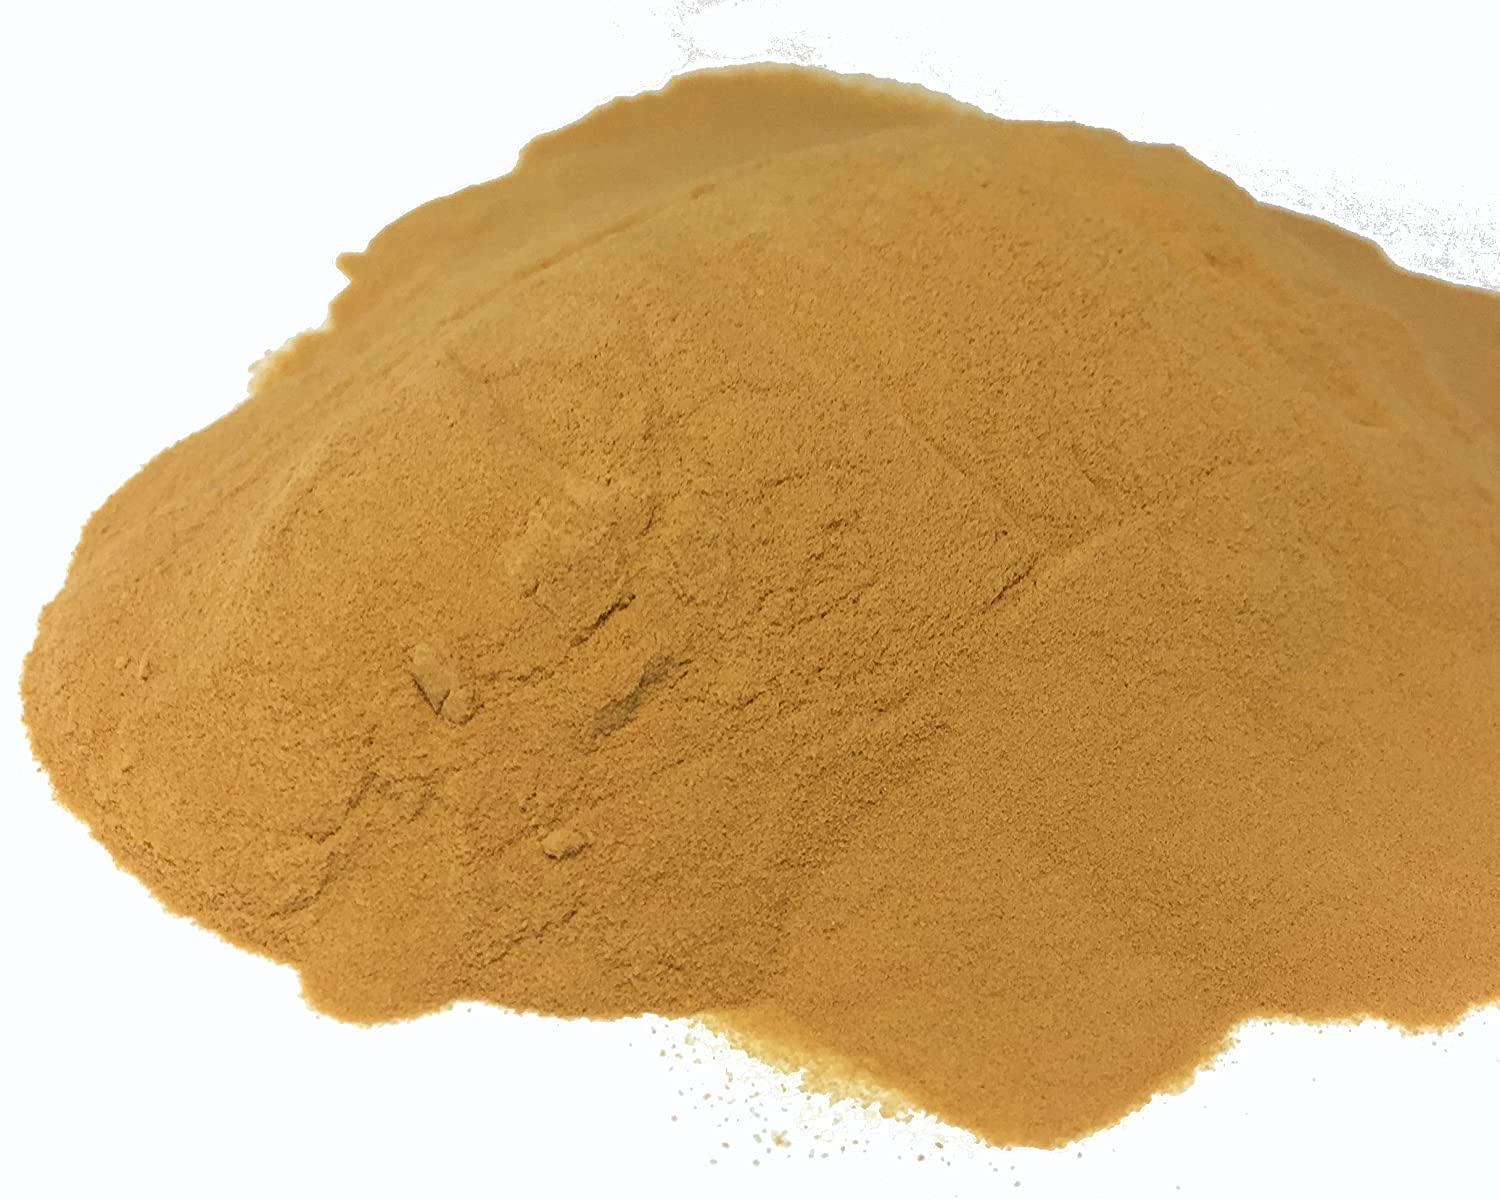 Soy Sauce dehydrated Powder by Great interest Chef Cherie 2.5 holds in o a Sacramento Mall jar